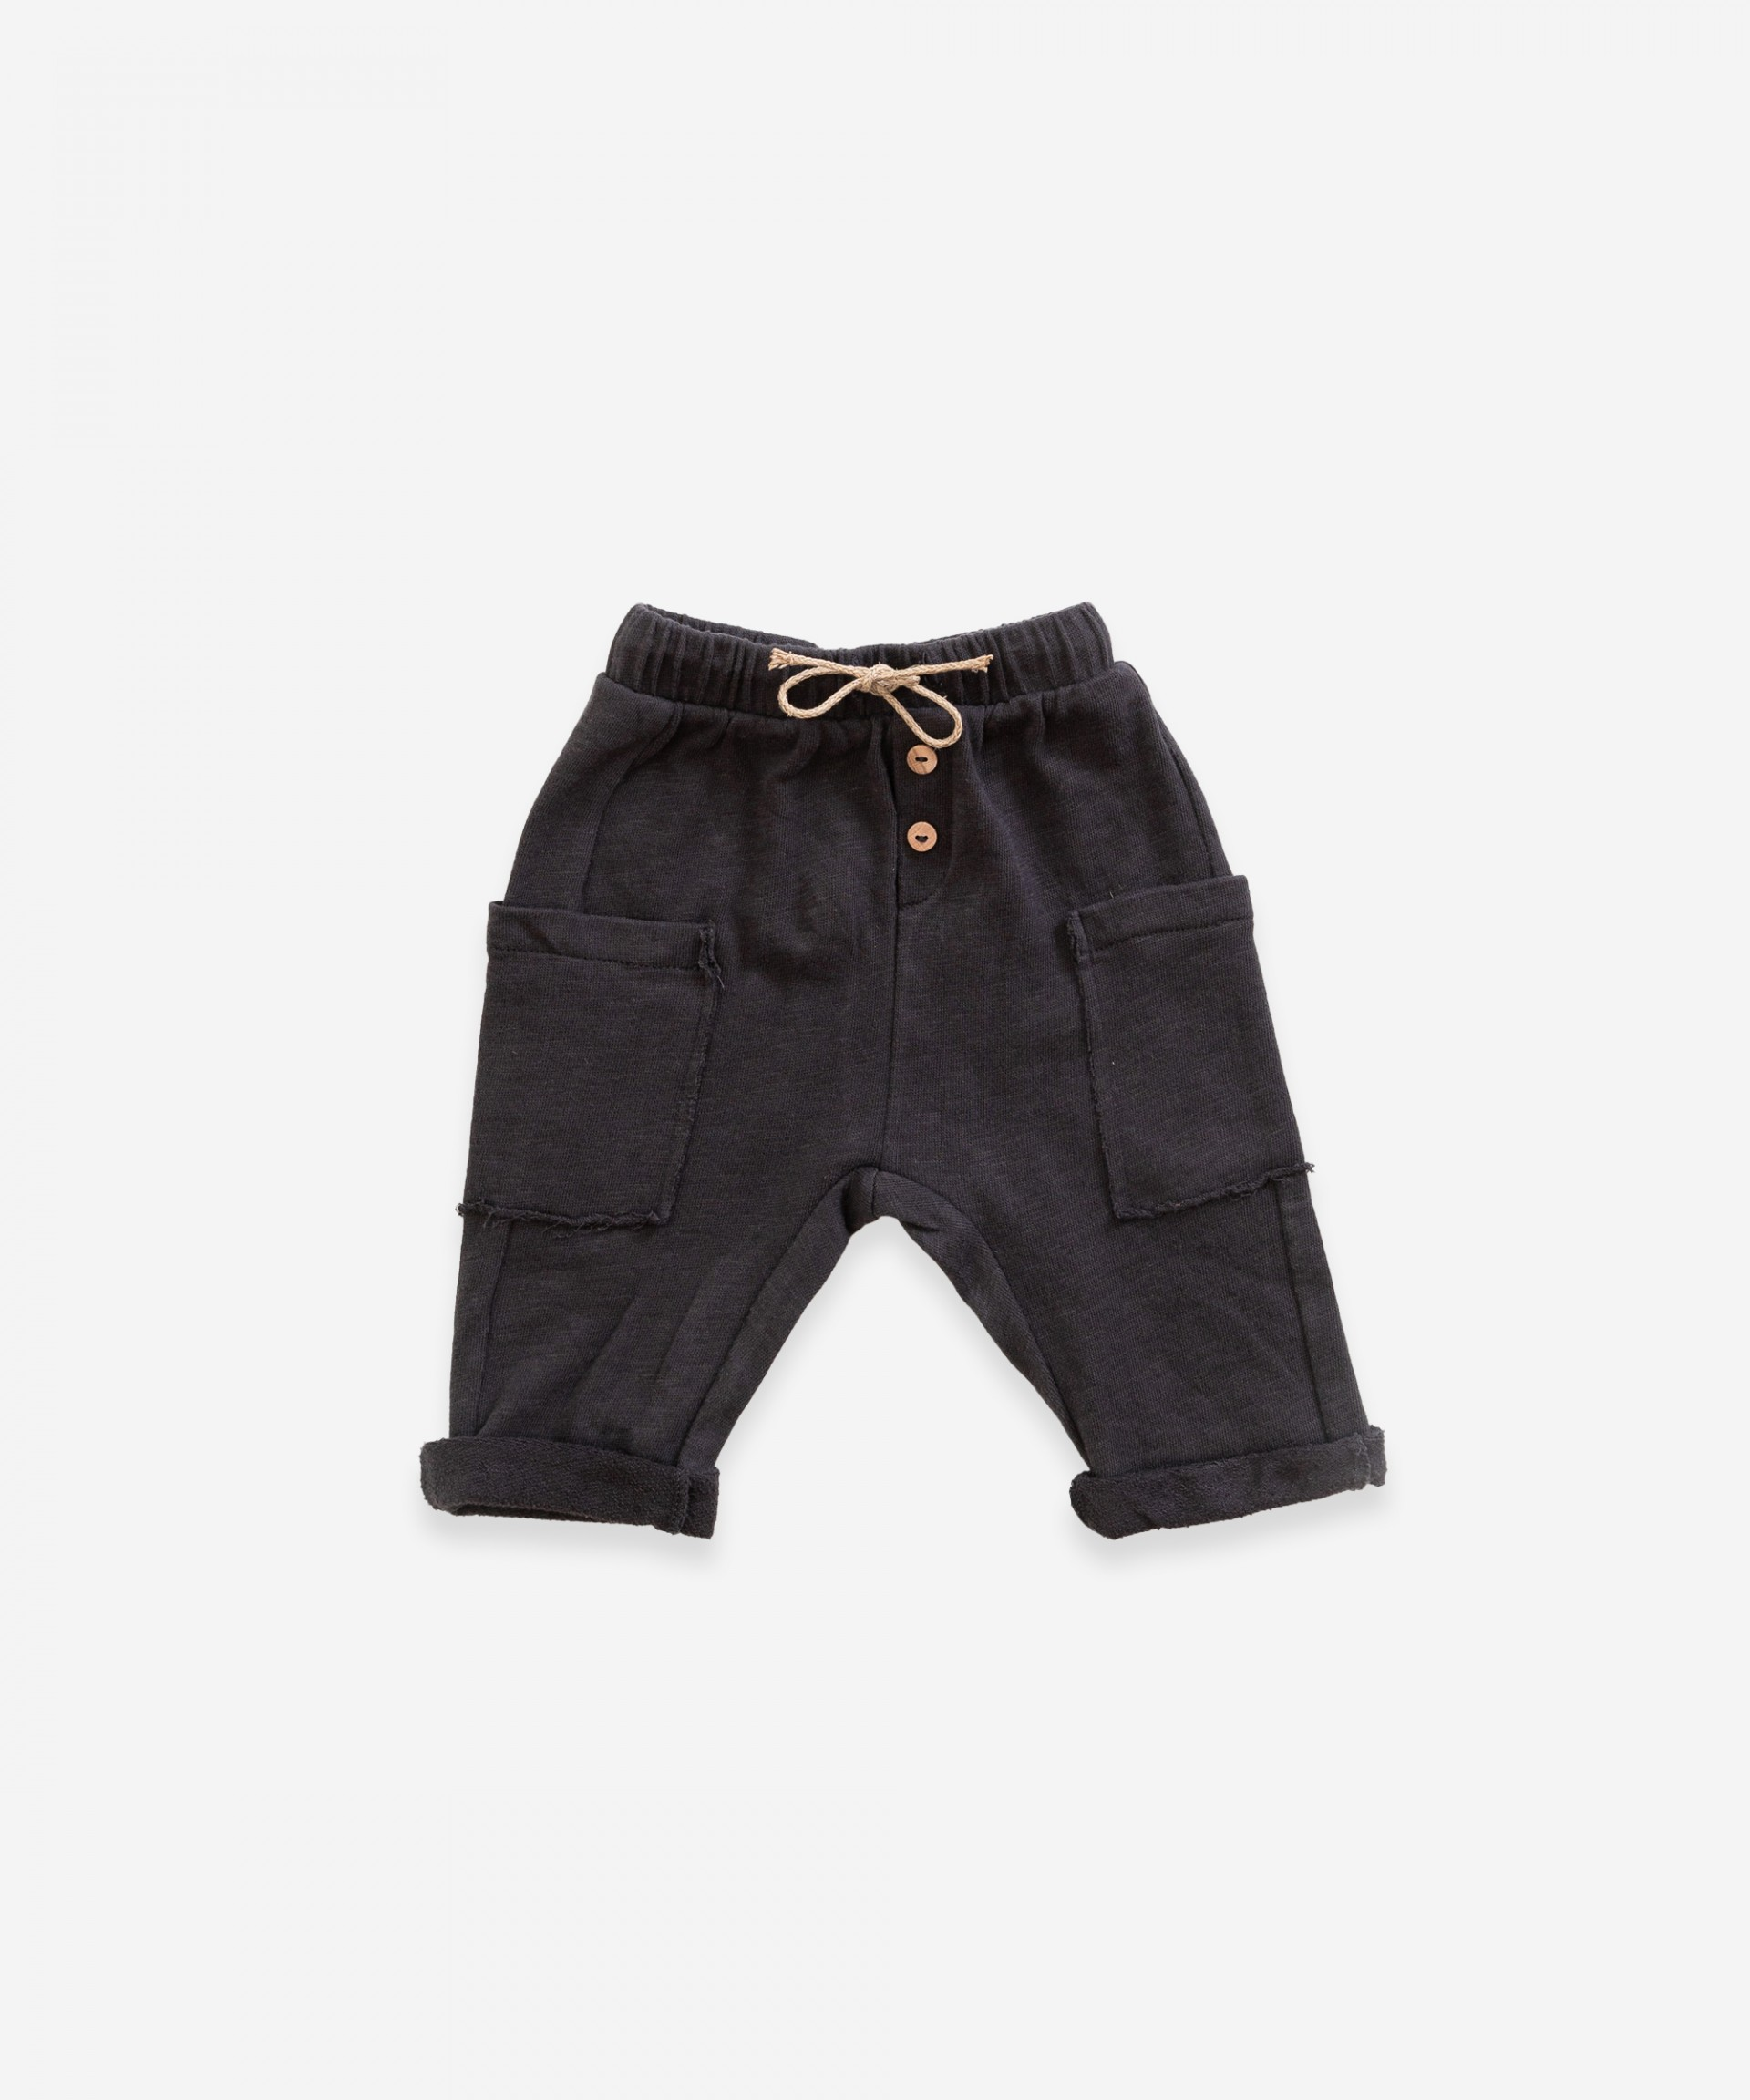 Shorts with side pockets in organic cotton | Weaving